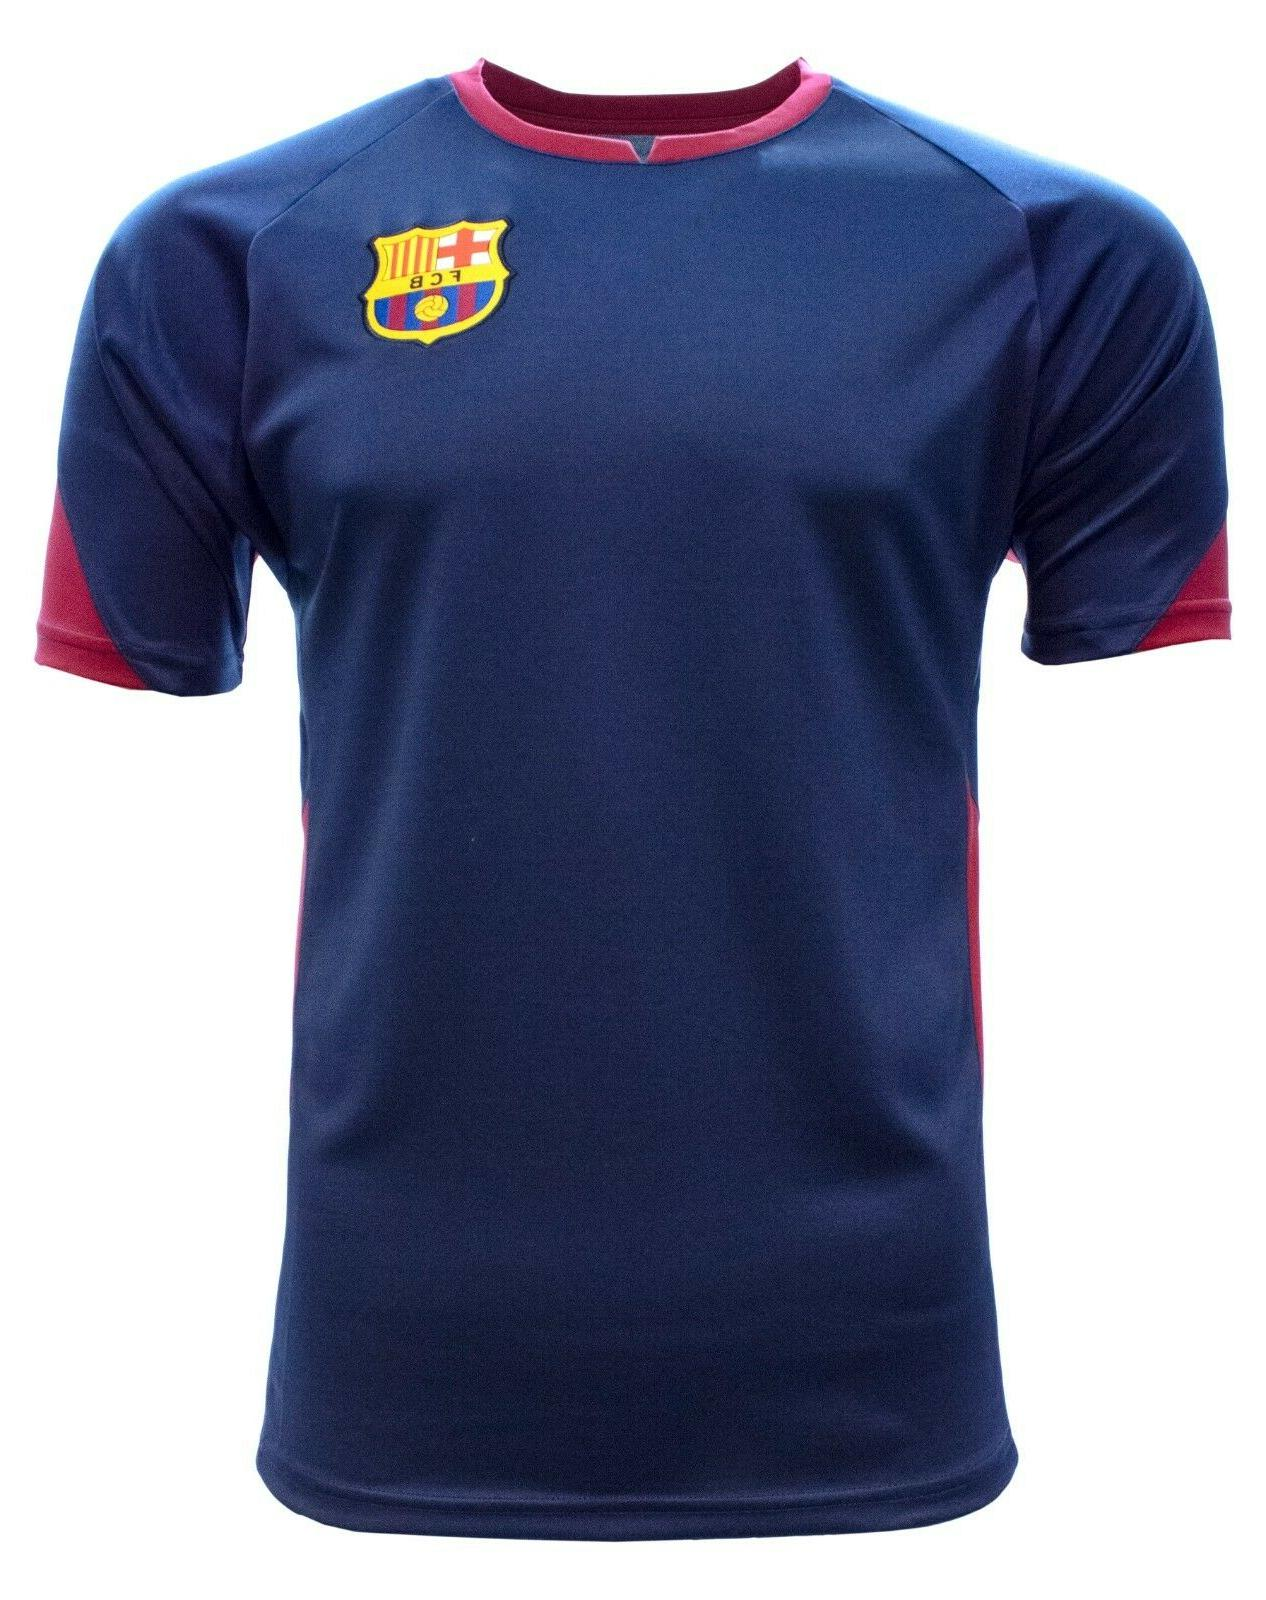 fc barcelona messi 10 jersey official licensed